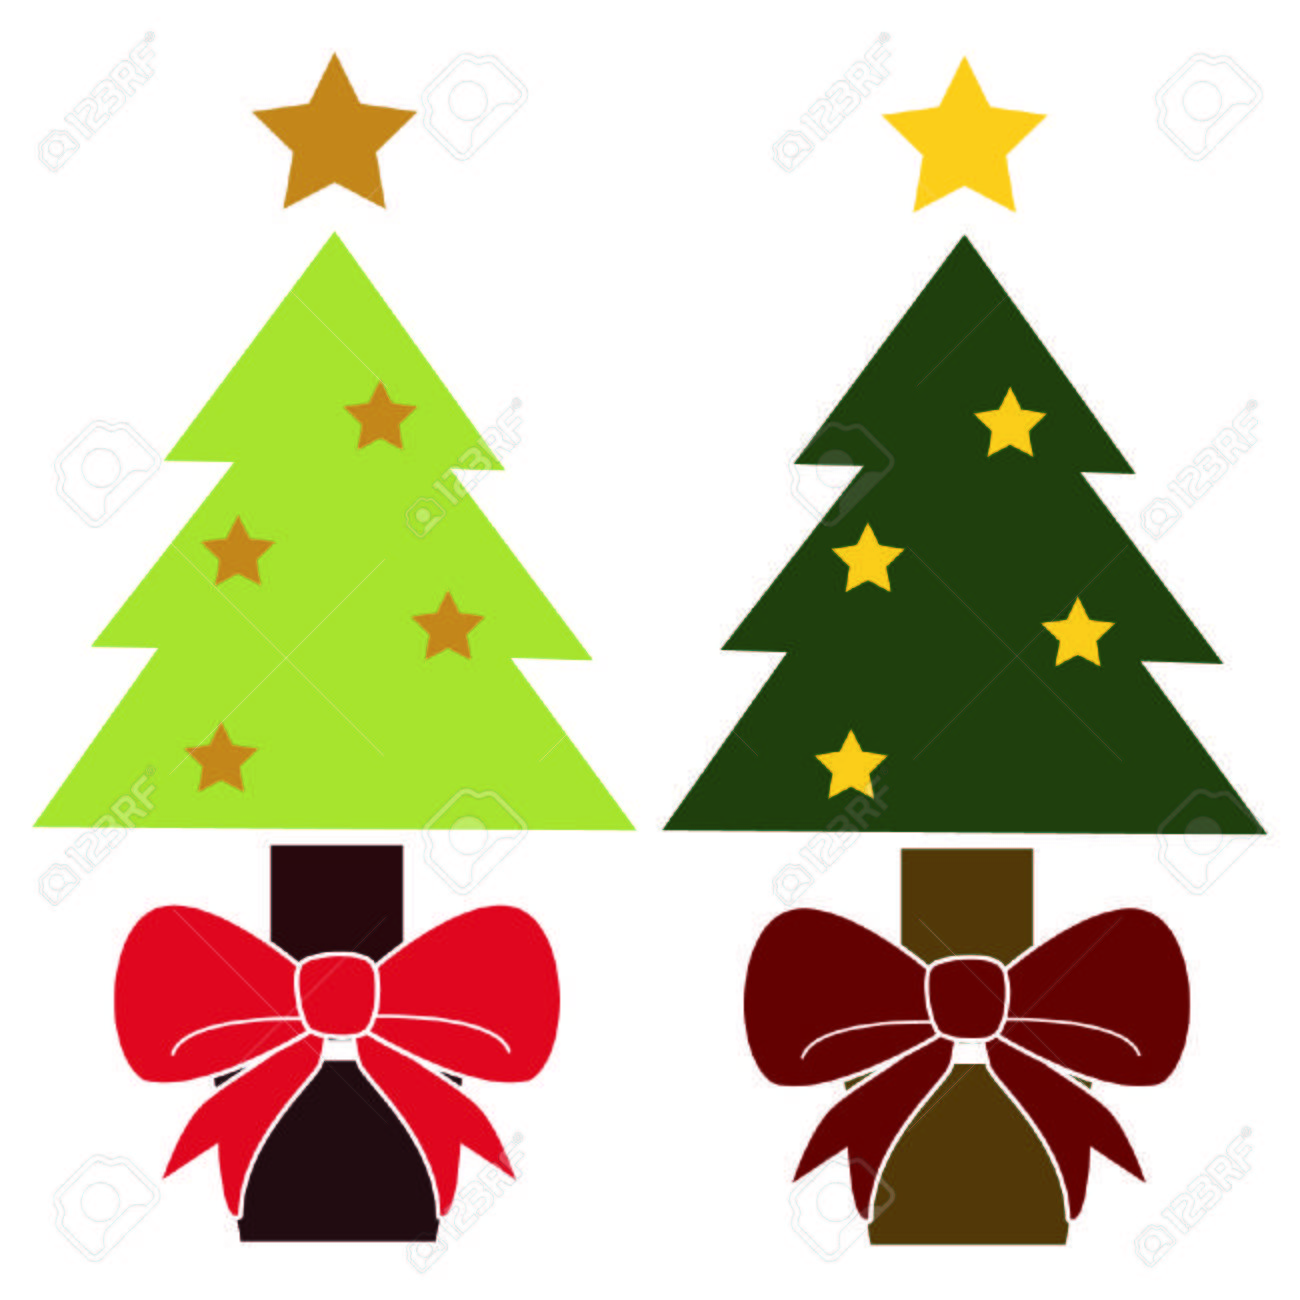 Cute Simple Vintage Colored Christmas Trees Royalty Free Cliparts ...